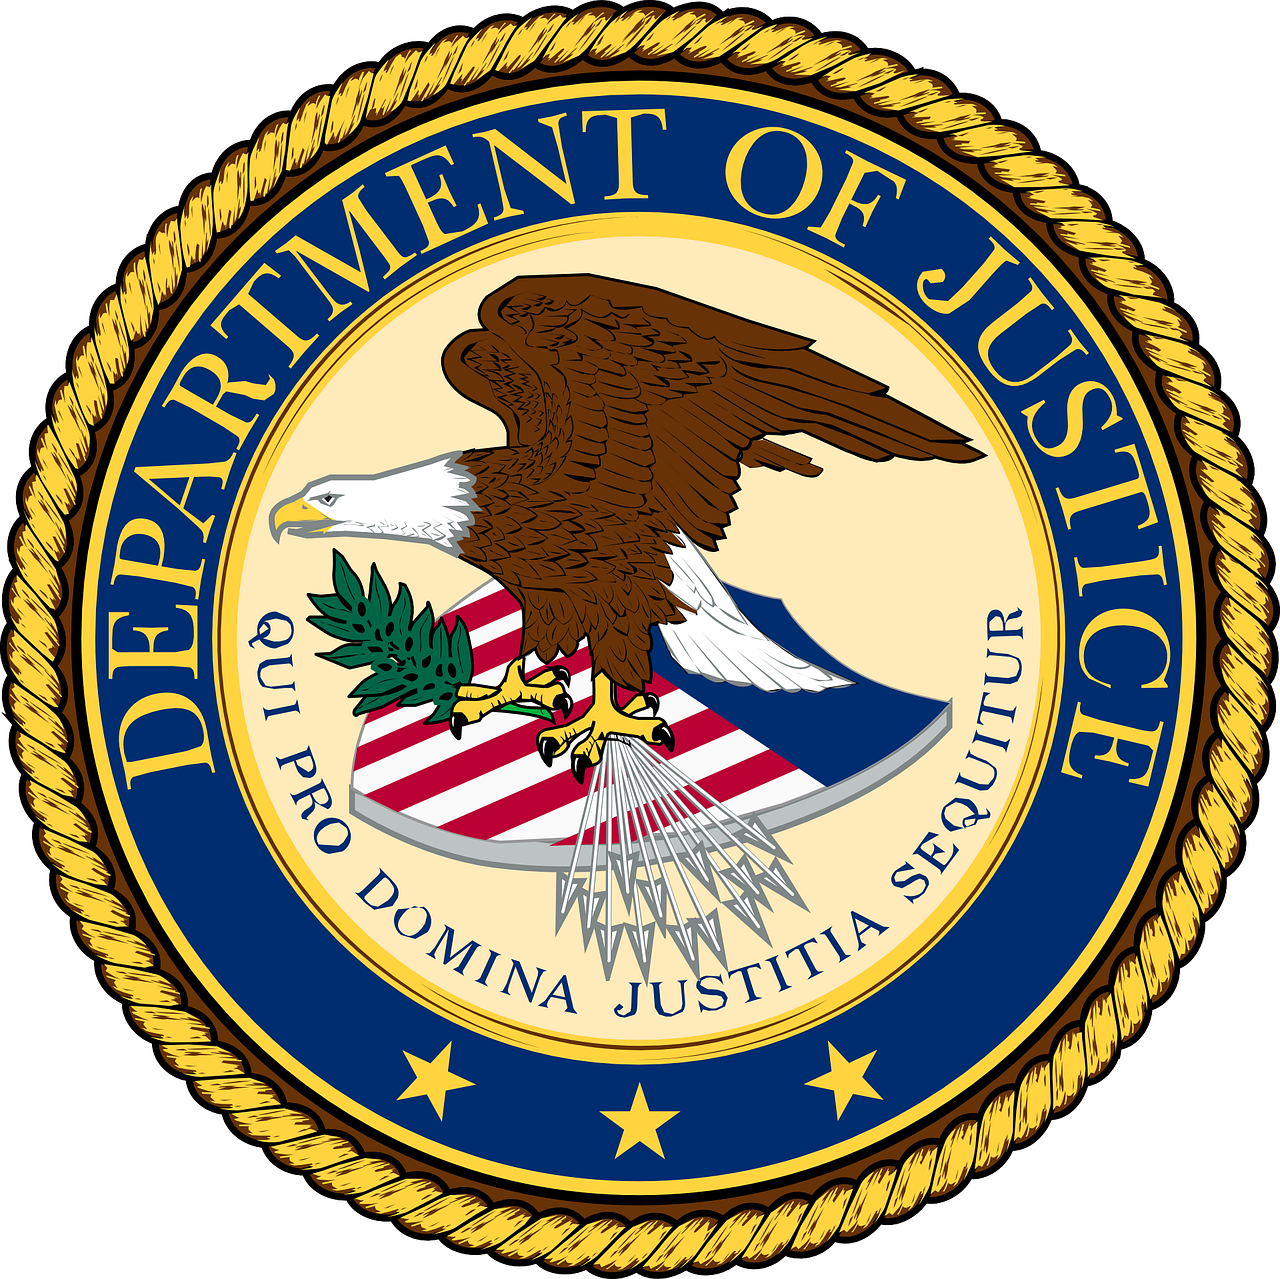 DOJ announces $2.2M funding to law enforcement agencies focused on community policing projects